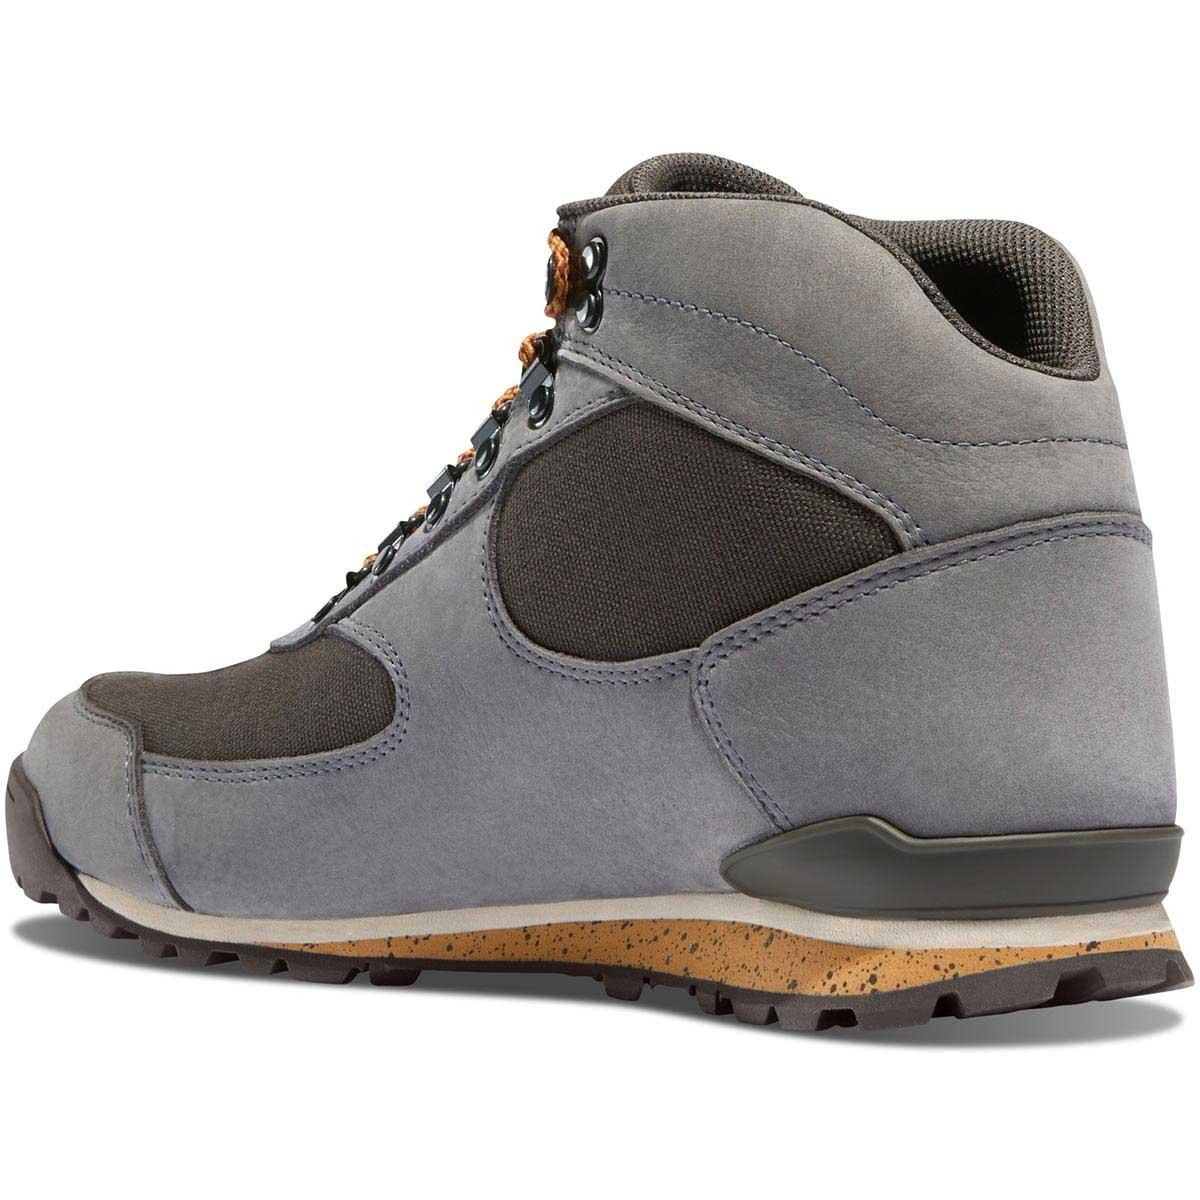 Danner 37363 Jag Slate Gray Lava Rock Hiking Boots